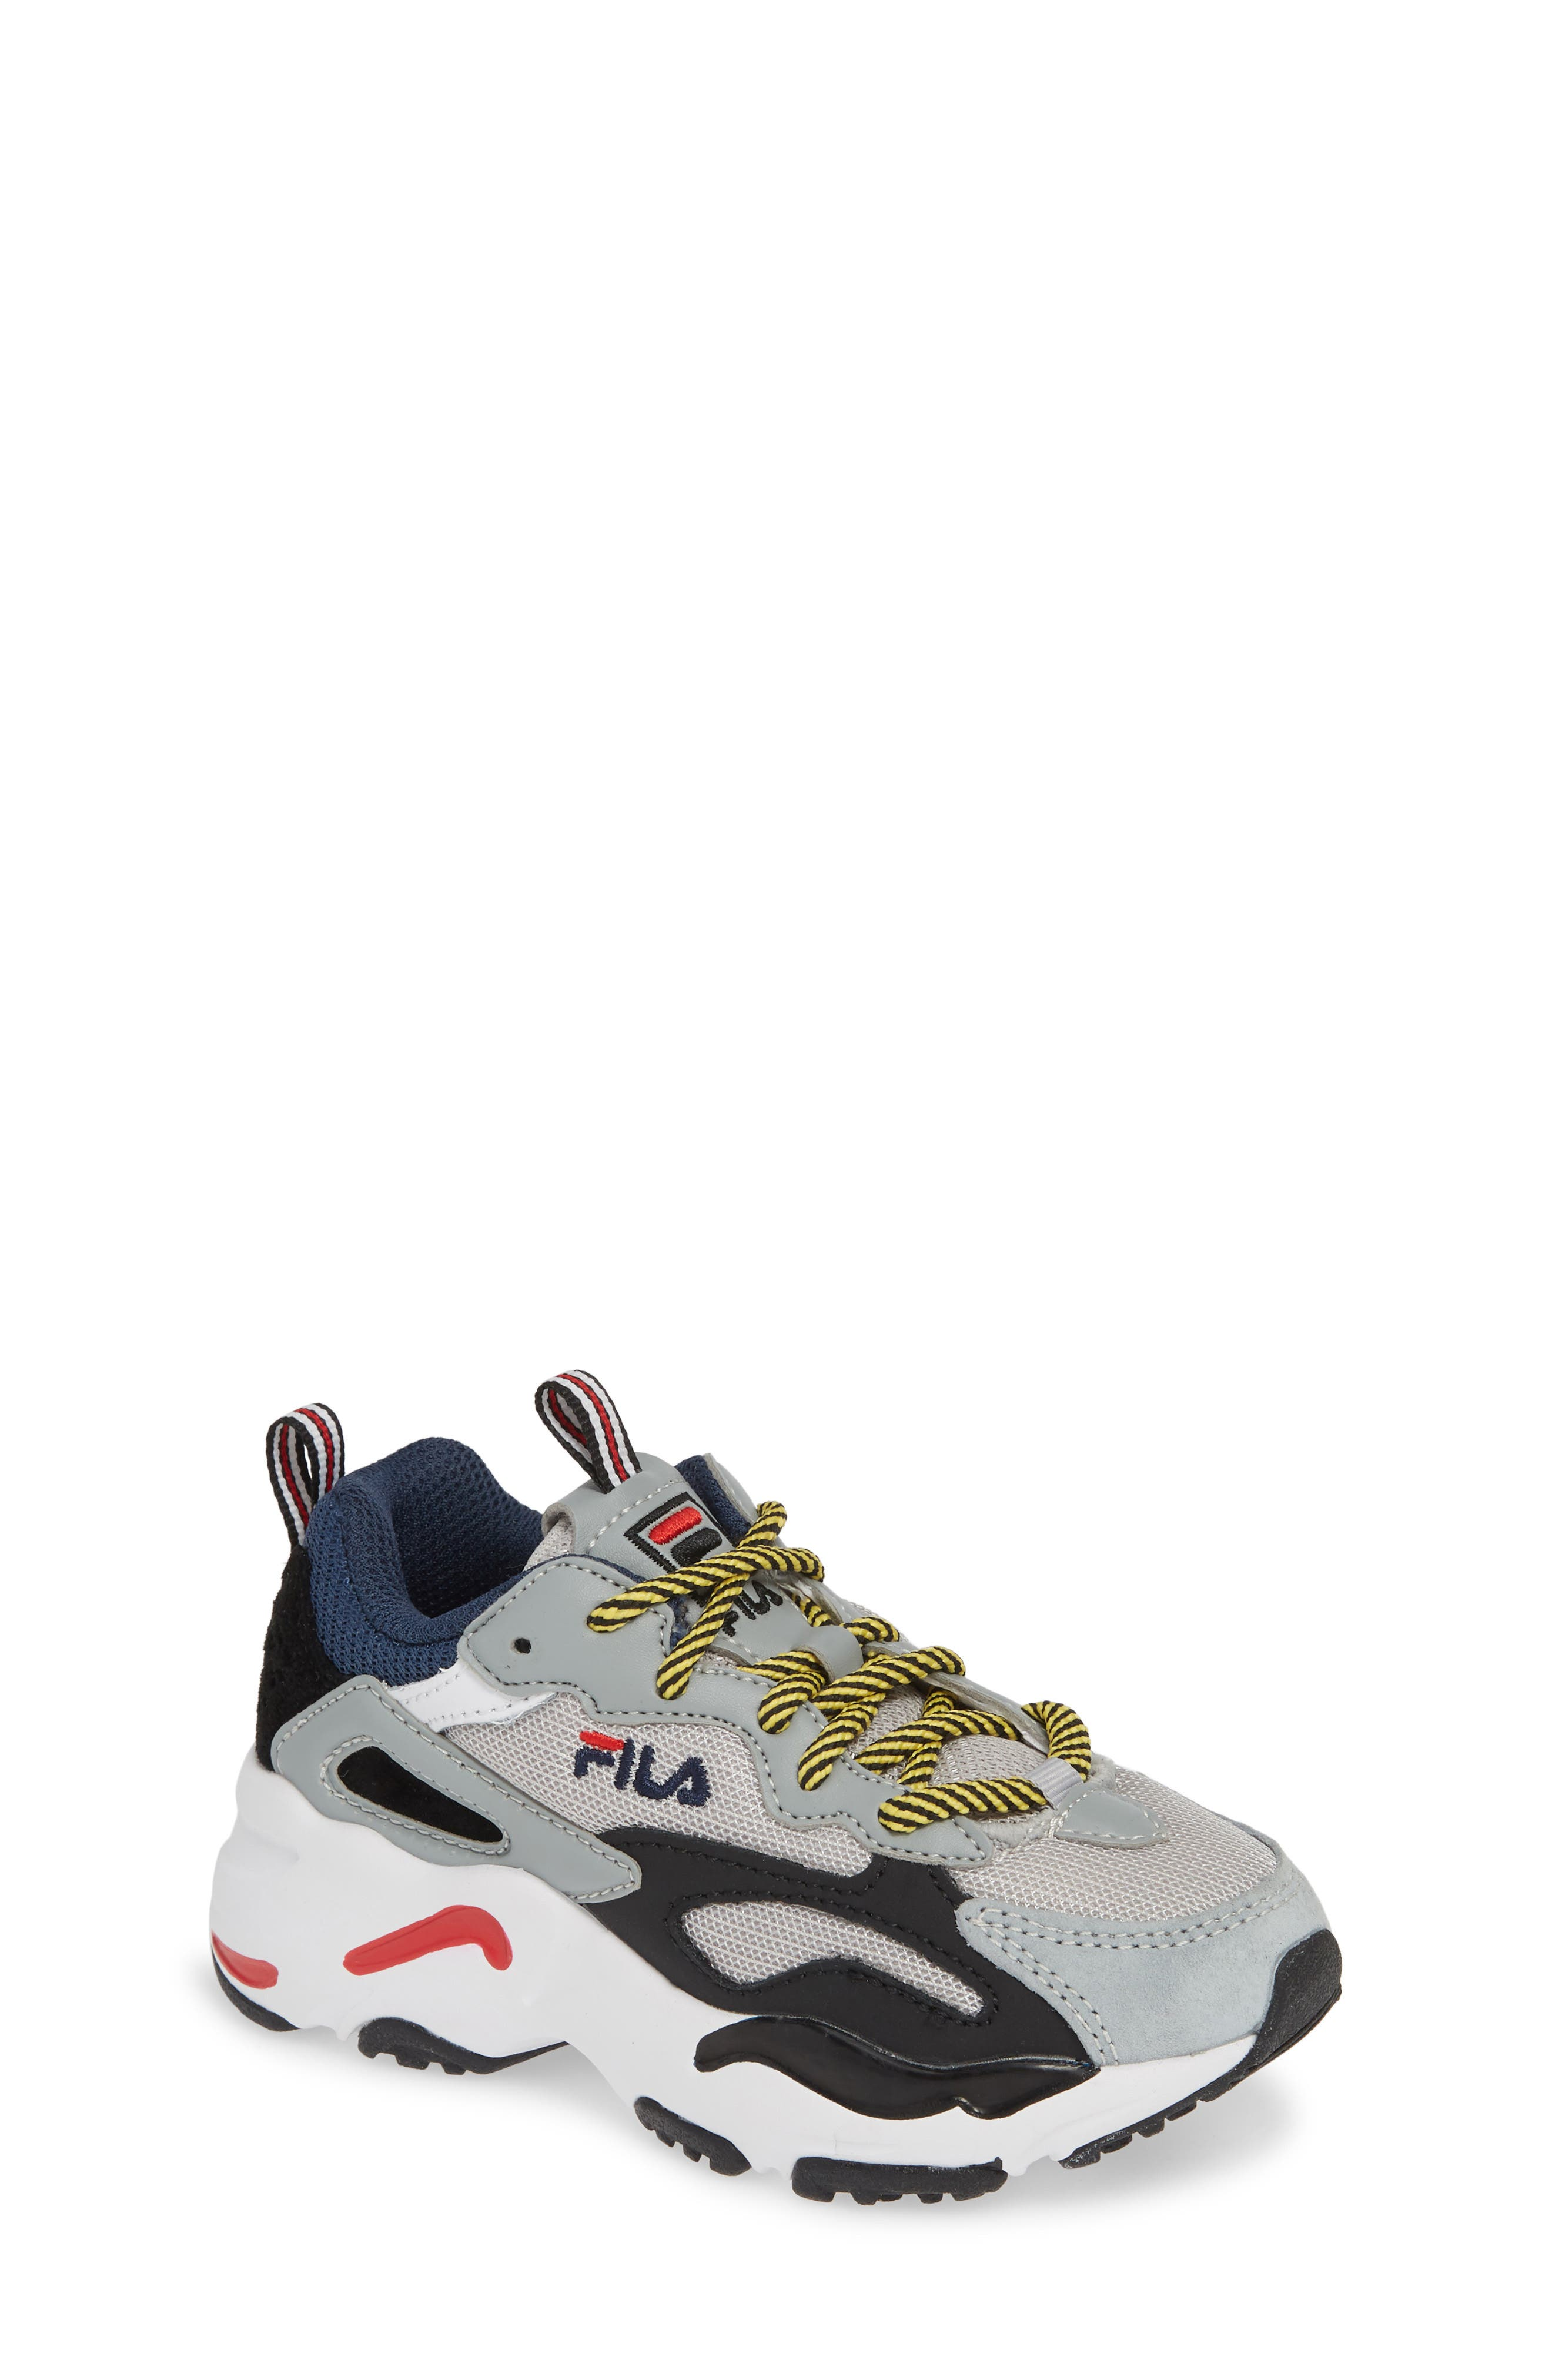 Toddler Fila Ray Tracer Sneaker Size 12 M  Grey